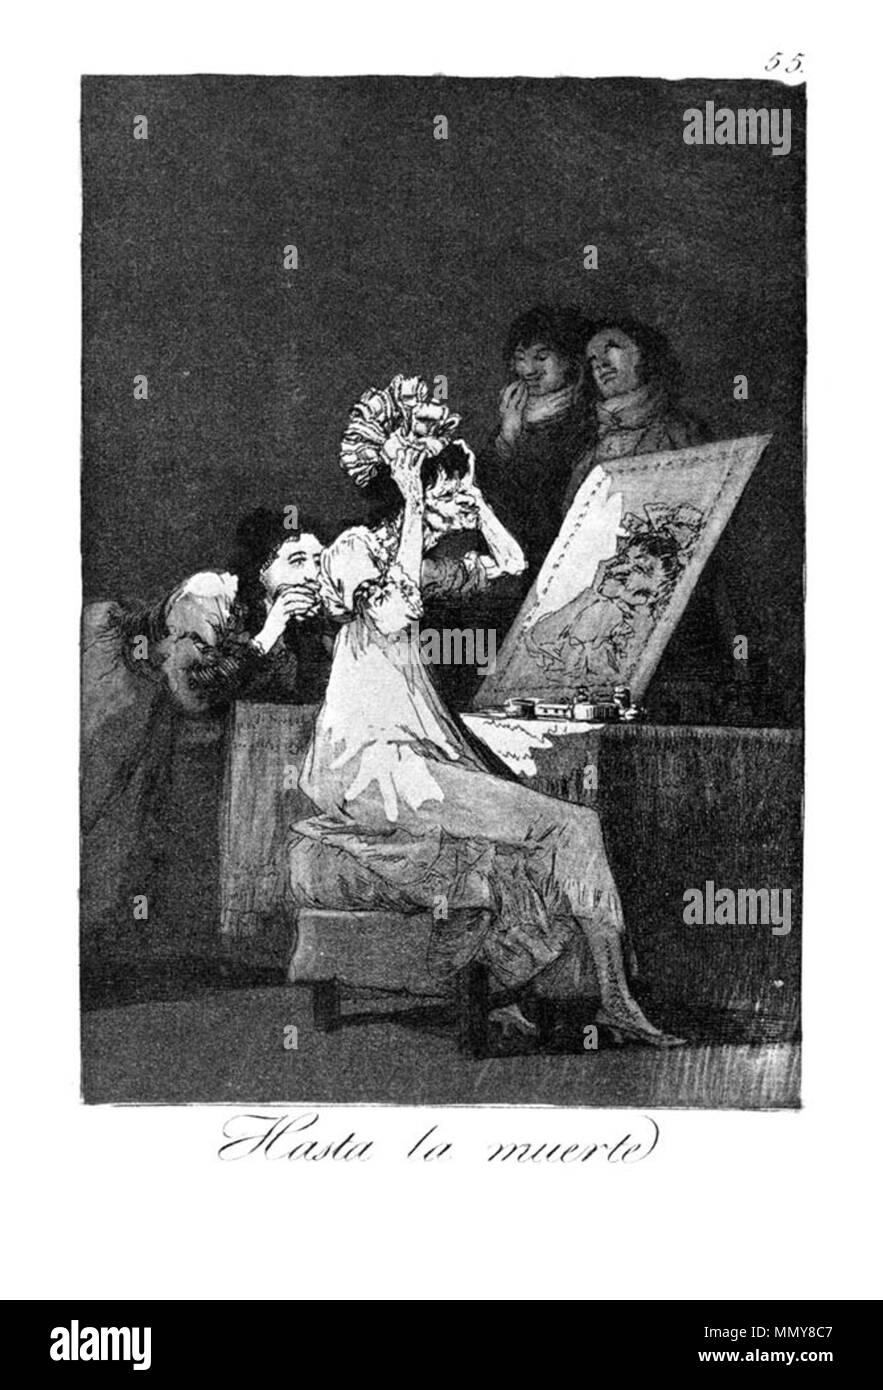 . Los Caprichos is a set of 80 aquatint prints created by Francisco Goya for release in 1799.  . 1799.   Francisco Goya (1746–1828)   Alternative names Francisco Goya Lucientes, Francisco de Goya y Lucientes, Francisco José Goya Lucientes  Description Spanish painter, printmaker, lithographer, engraver and etcher  Date of birth/death 30 March 1746 16 April 1828  Location of birth/death Fuendetodos Bordeaux  Work location Madrid, Zaragoza, Bordeaux  Authority control  : Q5432 VIAF:?54343141 ISNI:?0000 0001 2280 1608 ULAN:?500118936 LCCN:?n79003363 NLA:?36545788 WorldCat Goya - Caprichos (55 - Stock Image